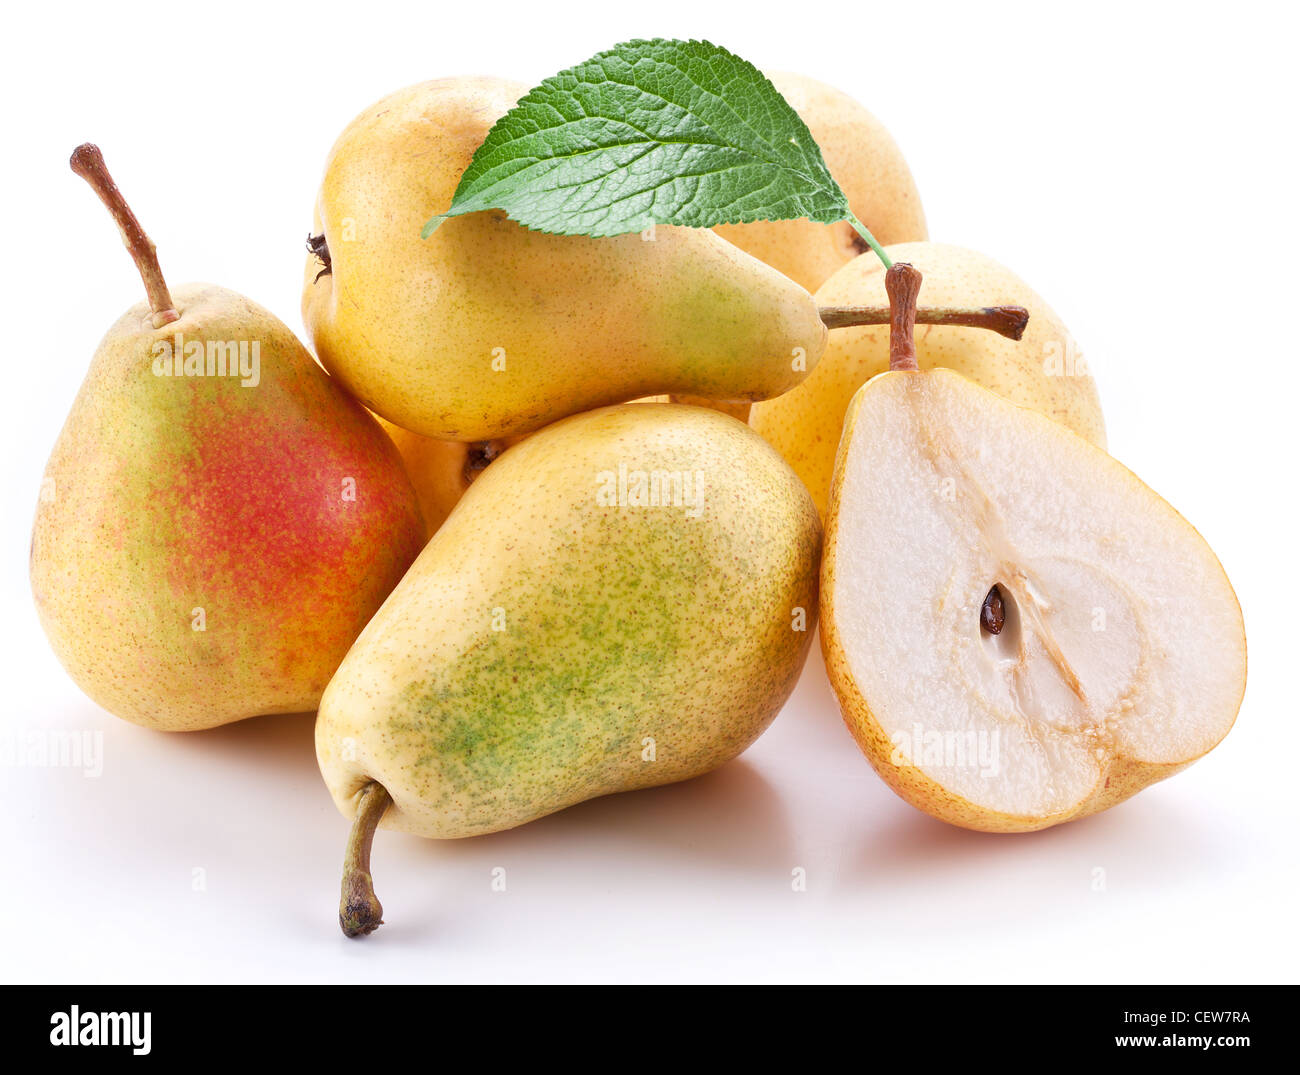 Ripe pears with a leaf.Objects are isolated on a white background. - Stock Image